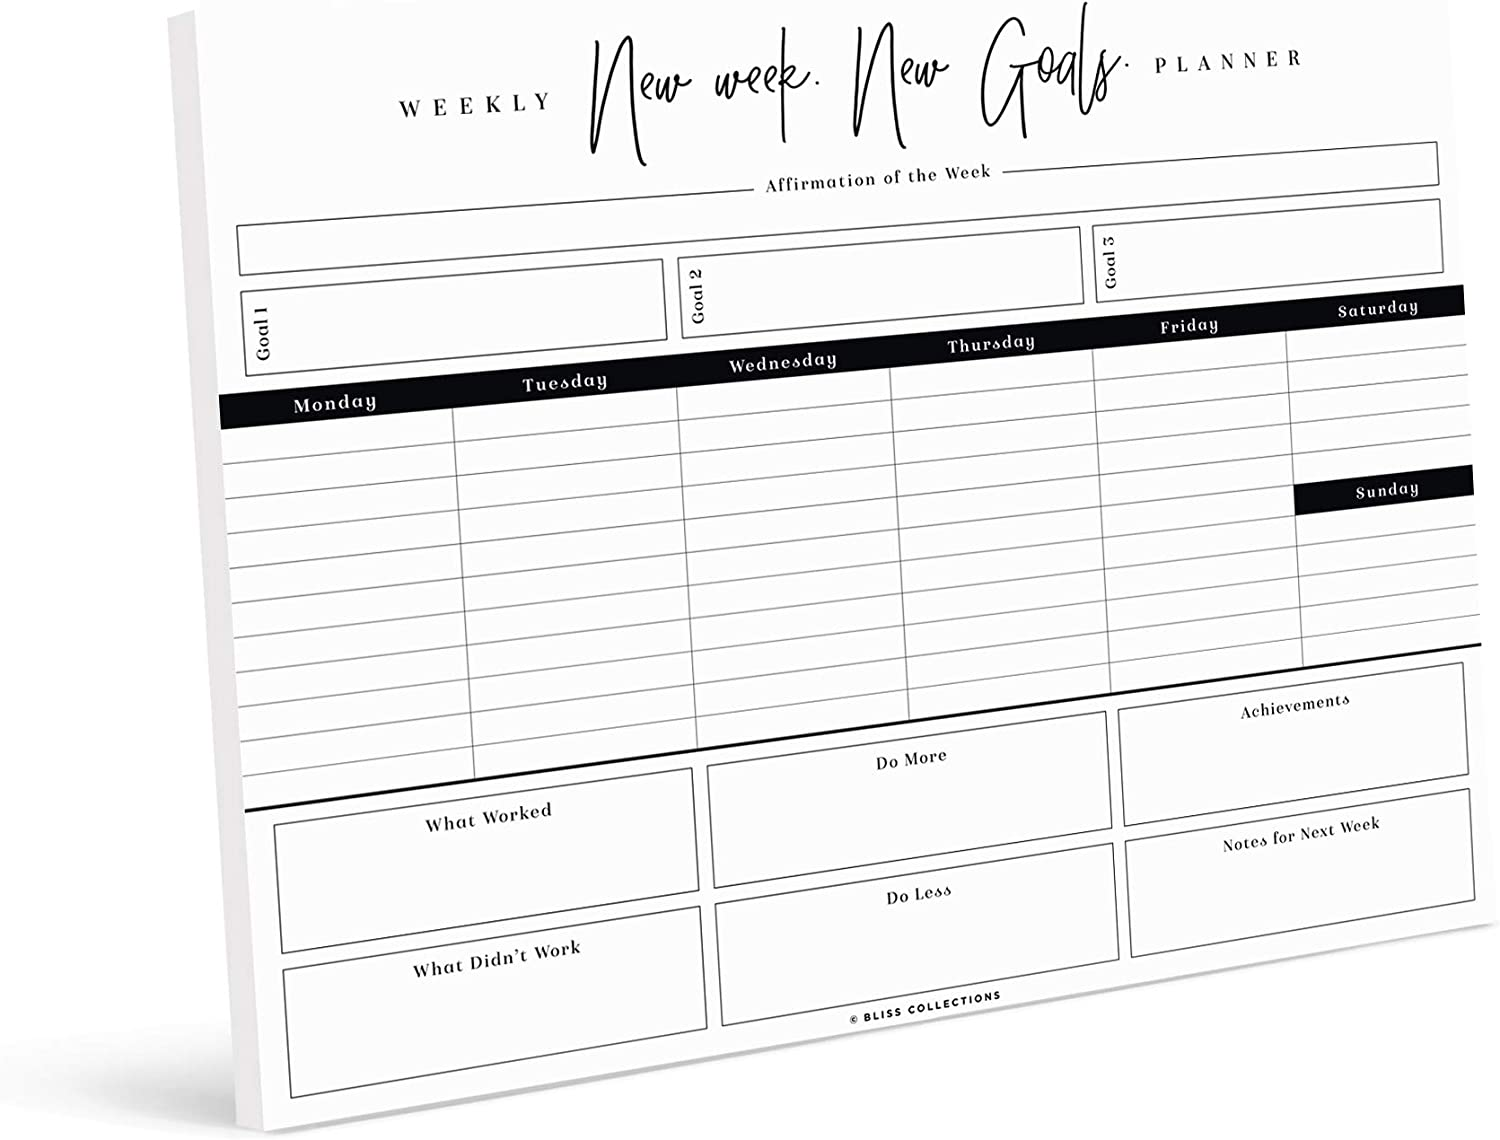 Bliss Collections Weekly Planner, 50 Undated Tear-Off Sheets - 8.5x11 New Week New Goals Calendar, Organizer, Scheduler, Productivity Tracker for Organizing Goals, Tasks, Ideas, Notes, To Do Lists